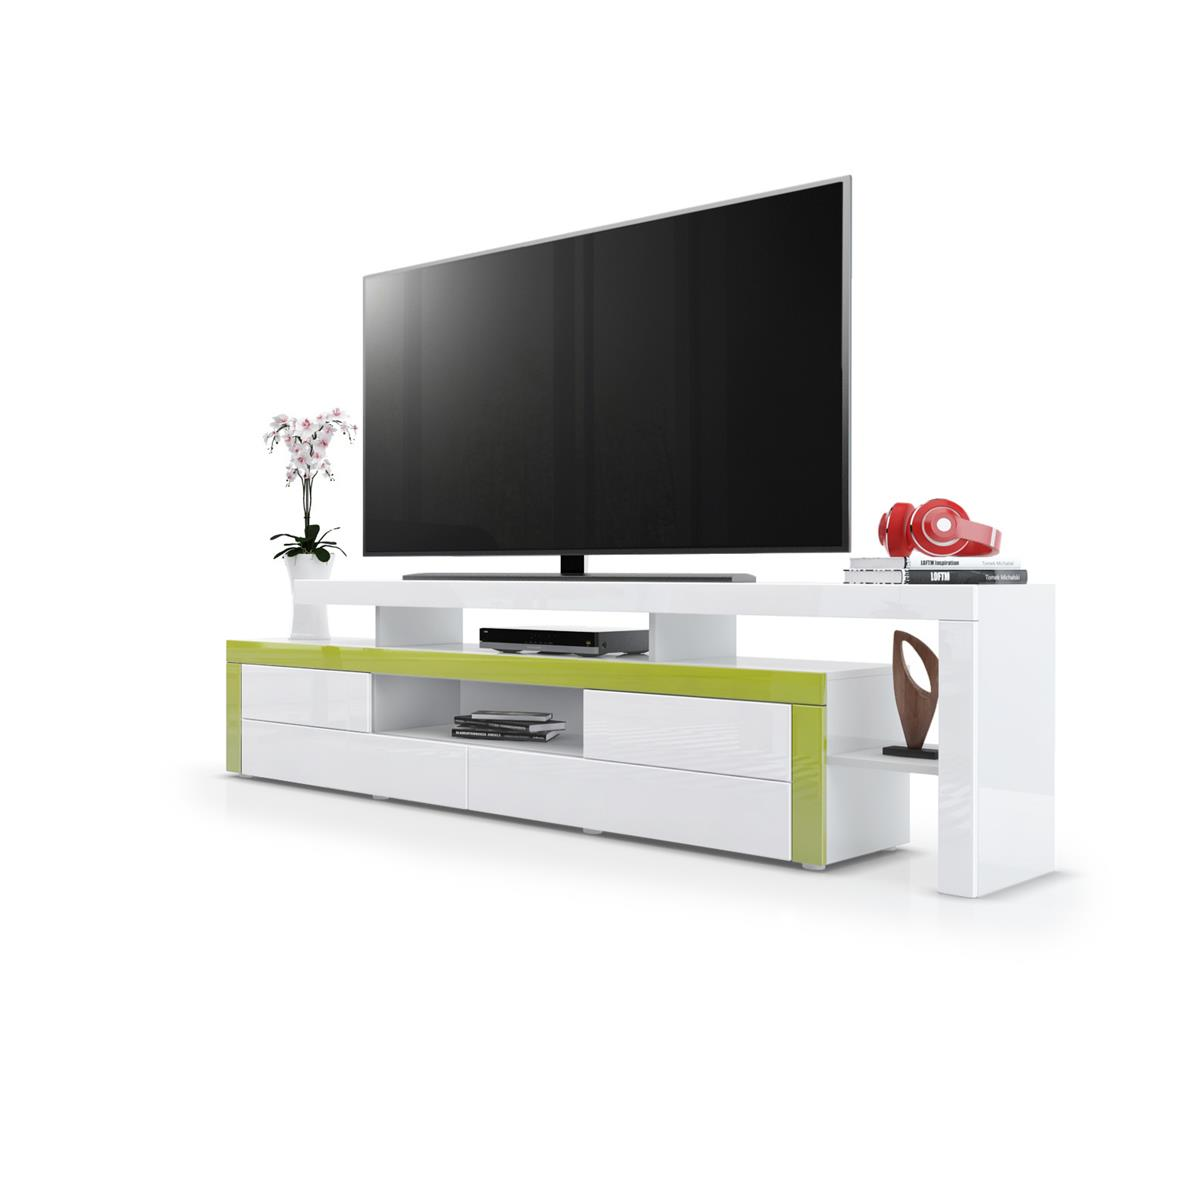 tv weiss top orion clbwds cm zoll p hd led lcd tv mit integr dvd player with tv weiss free. Black Bedroom Furniture Sets. Home Design Ideas